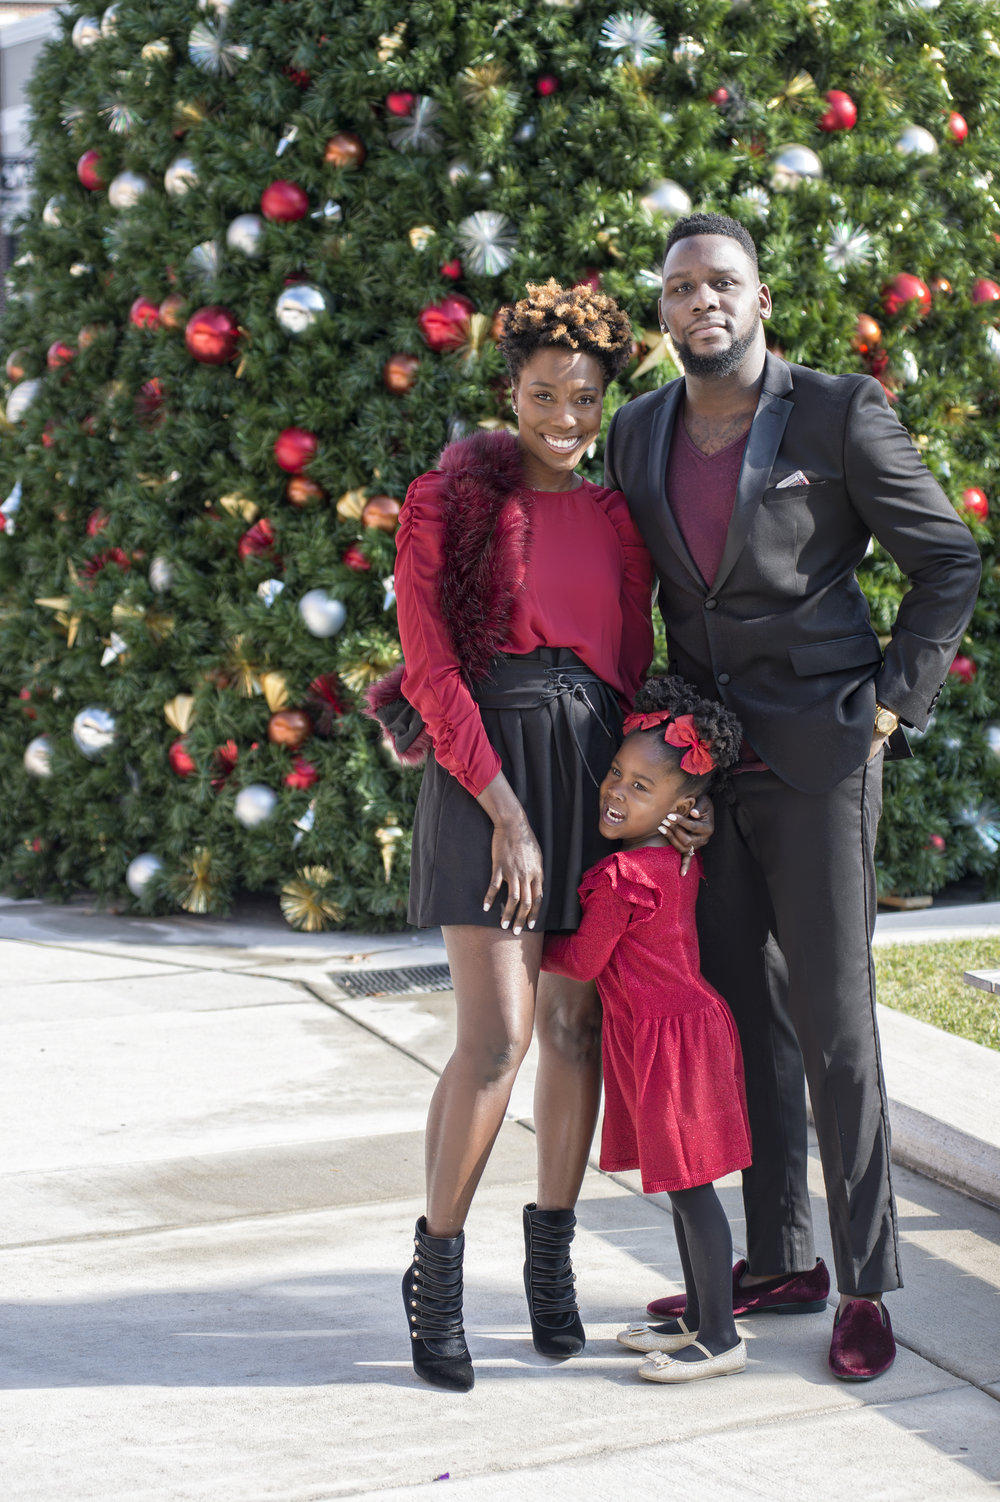 dsw-family-holiday-pictures-themboldens12.JPG